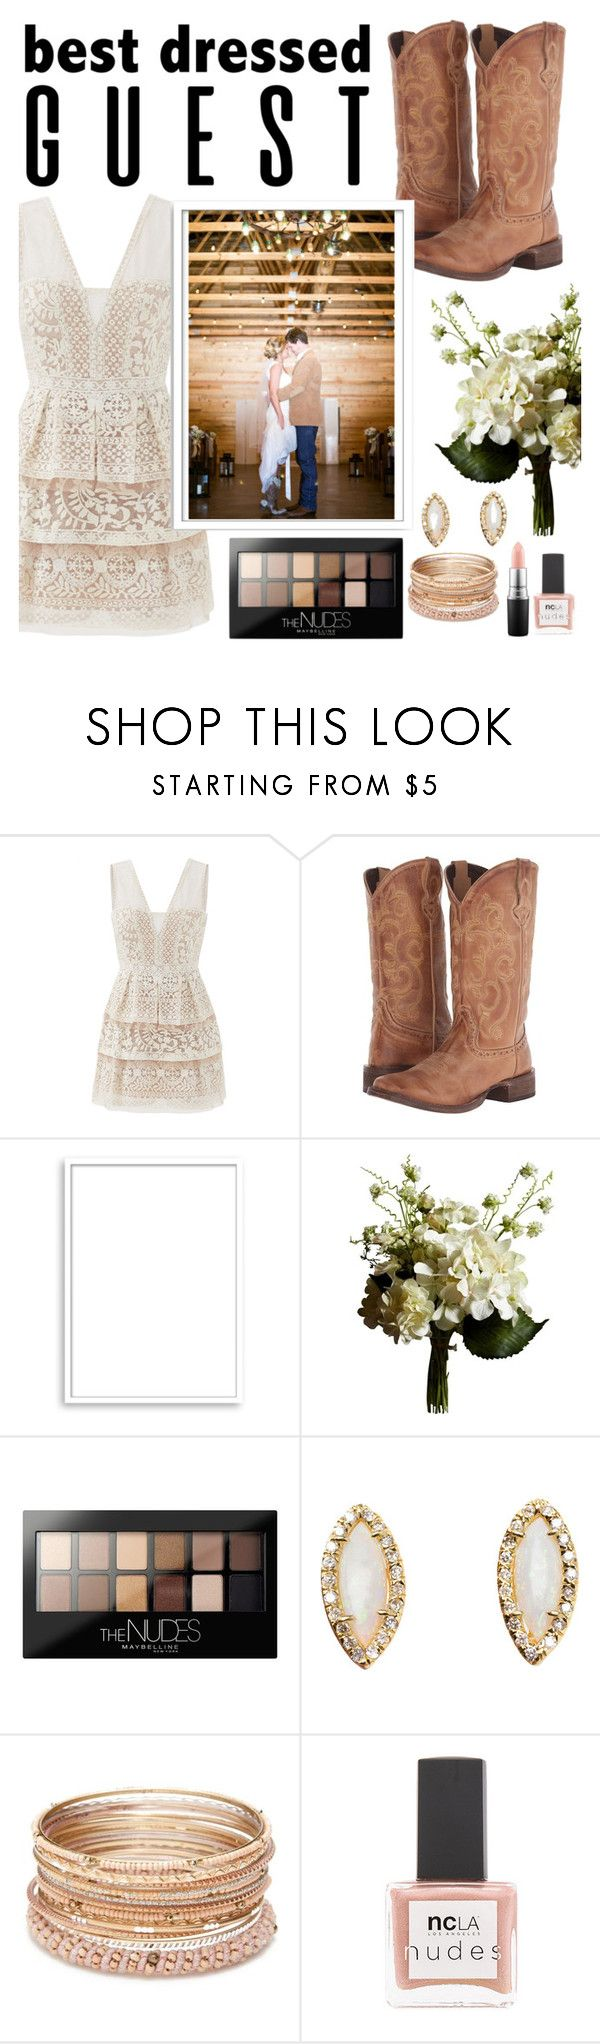 """""""Best dressed guest : Barn wedding"""" by iconsoffashion ❤ liked on Polyvore featuring BCBGMAXAZRIA, Roper, Bomedo, Abigail Ahern, Maybelline, Kimberly McDonald, Red Camel, ncLA, MAC Cosmetics and polyvoreeditorial"""